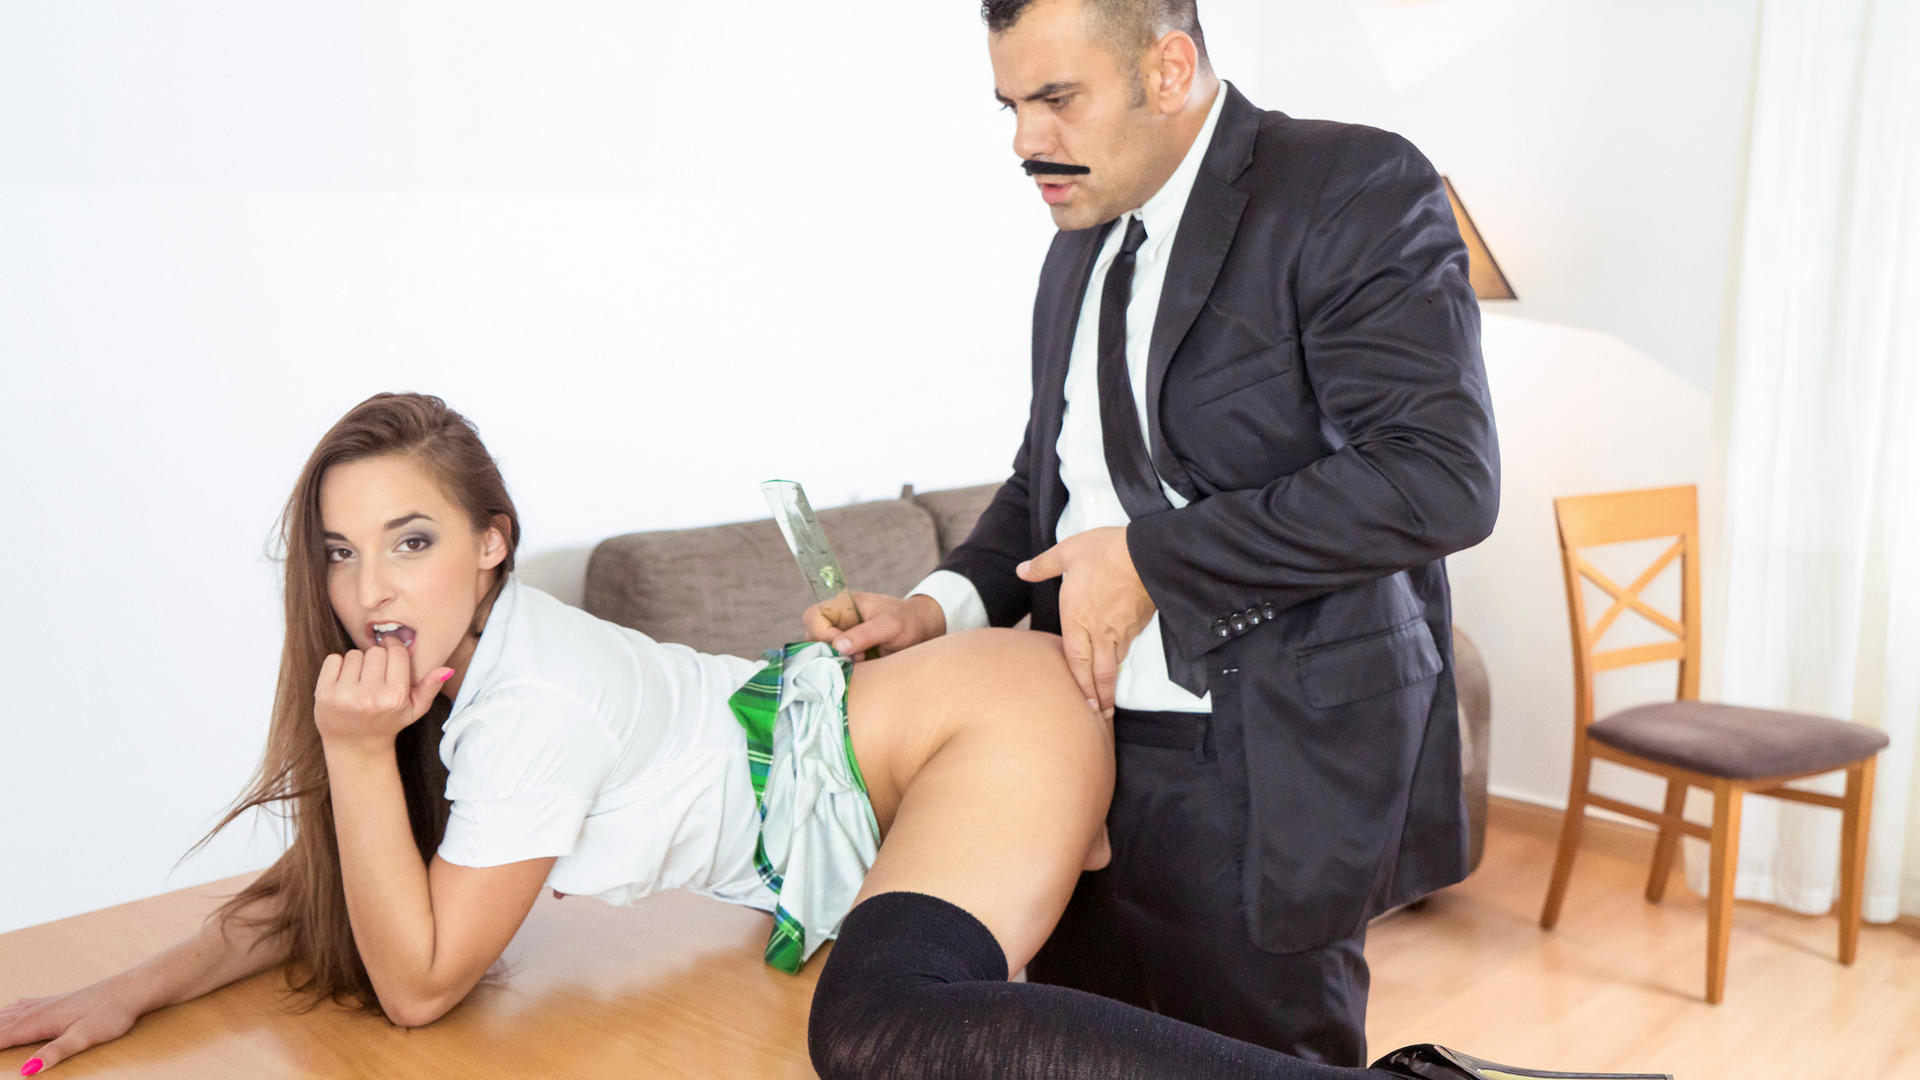 Funny sex ed tutorial on how to roleplay with Hungarian hottie Amirah Adara